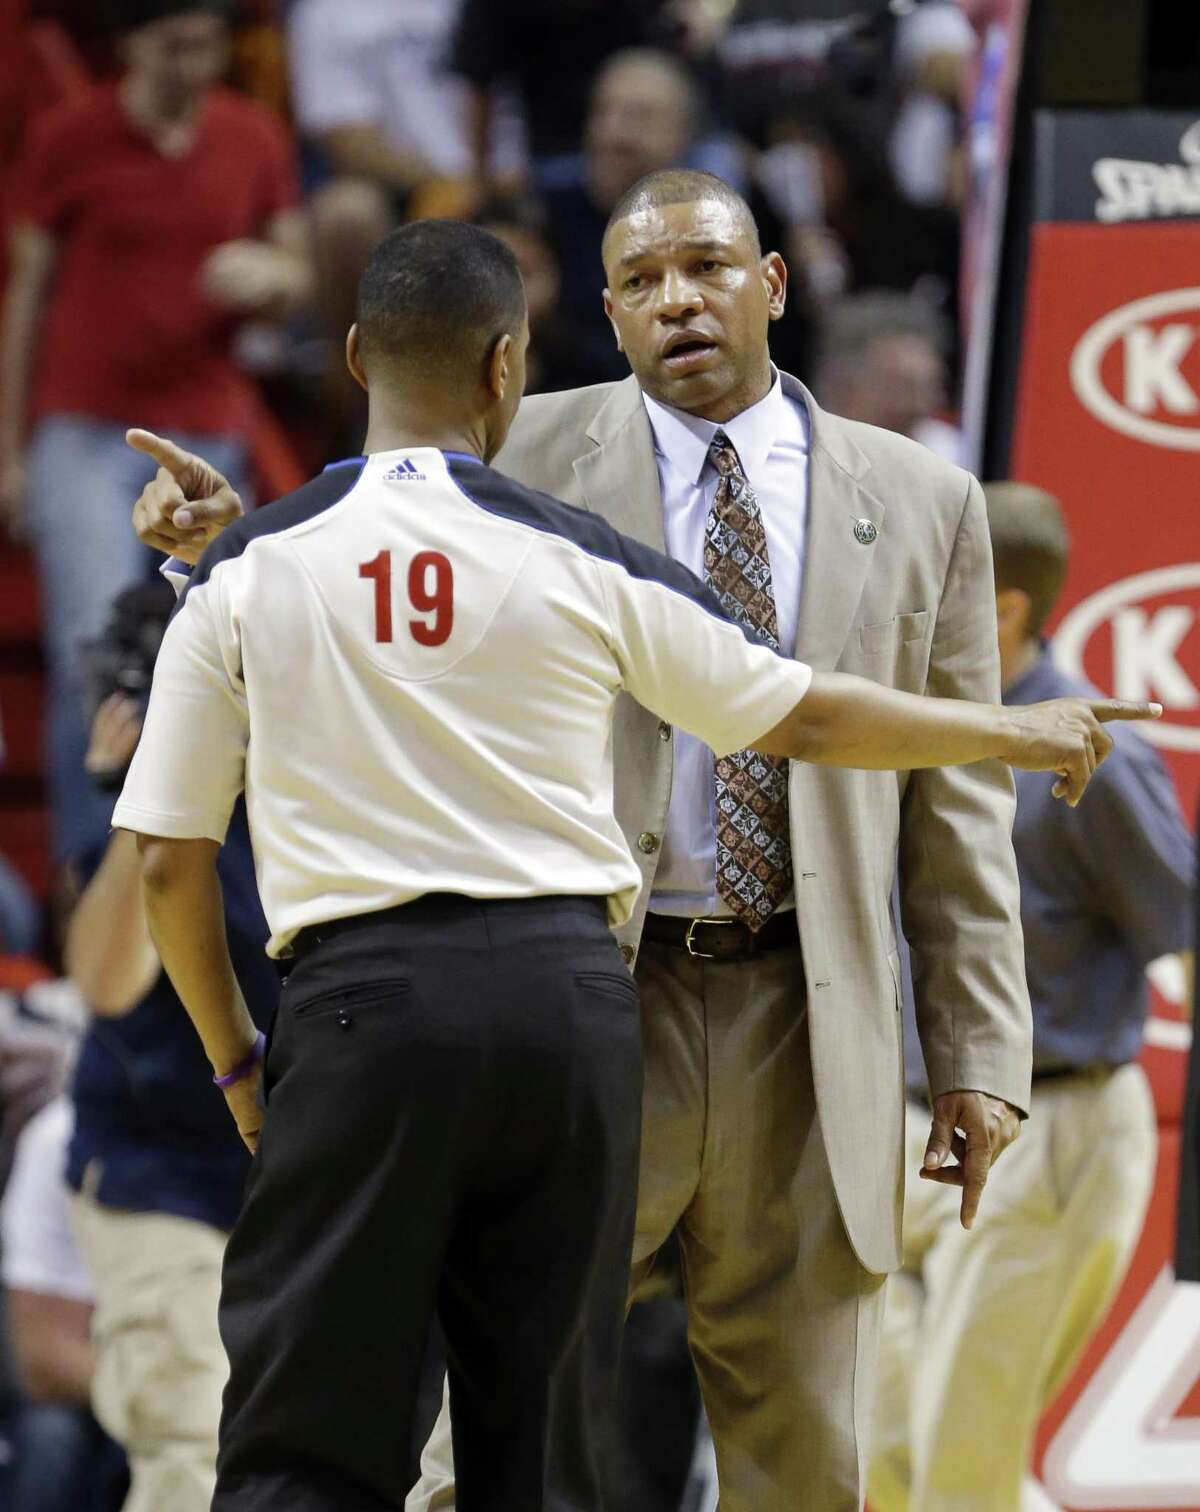 Boston Celtics head coach Doc Rivers, rear, argues a call with referee James Capers (19) during the second half of an NBA basketball game against the Miami Heat, Friday, April 12, 2013 in Miami. The Heat defeated the Celtics 109-101. (AP Photo/Wilfredo Lee)